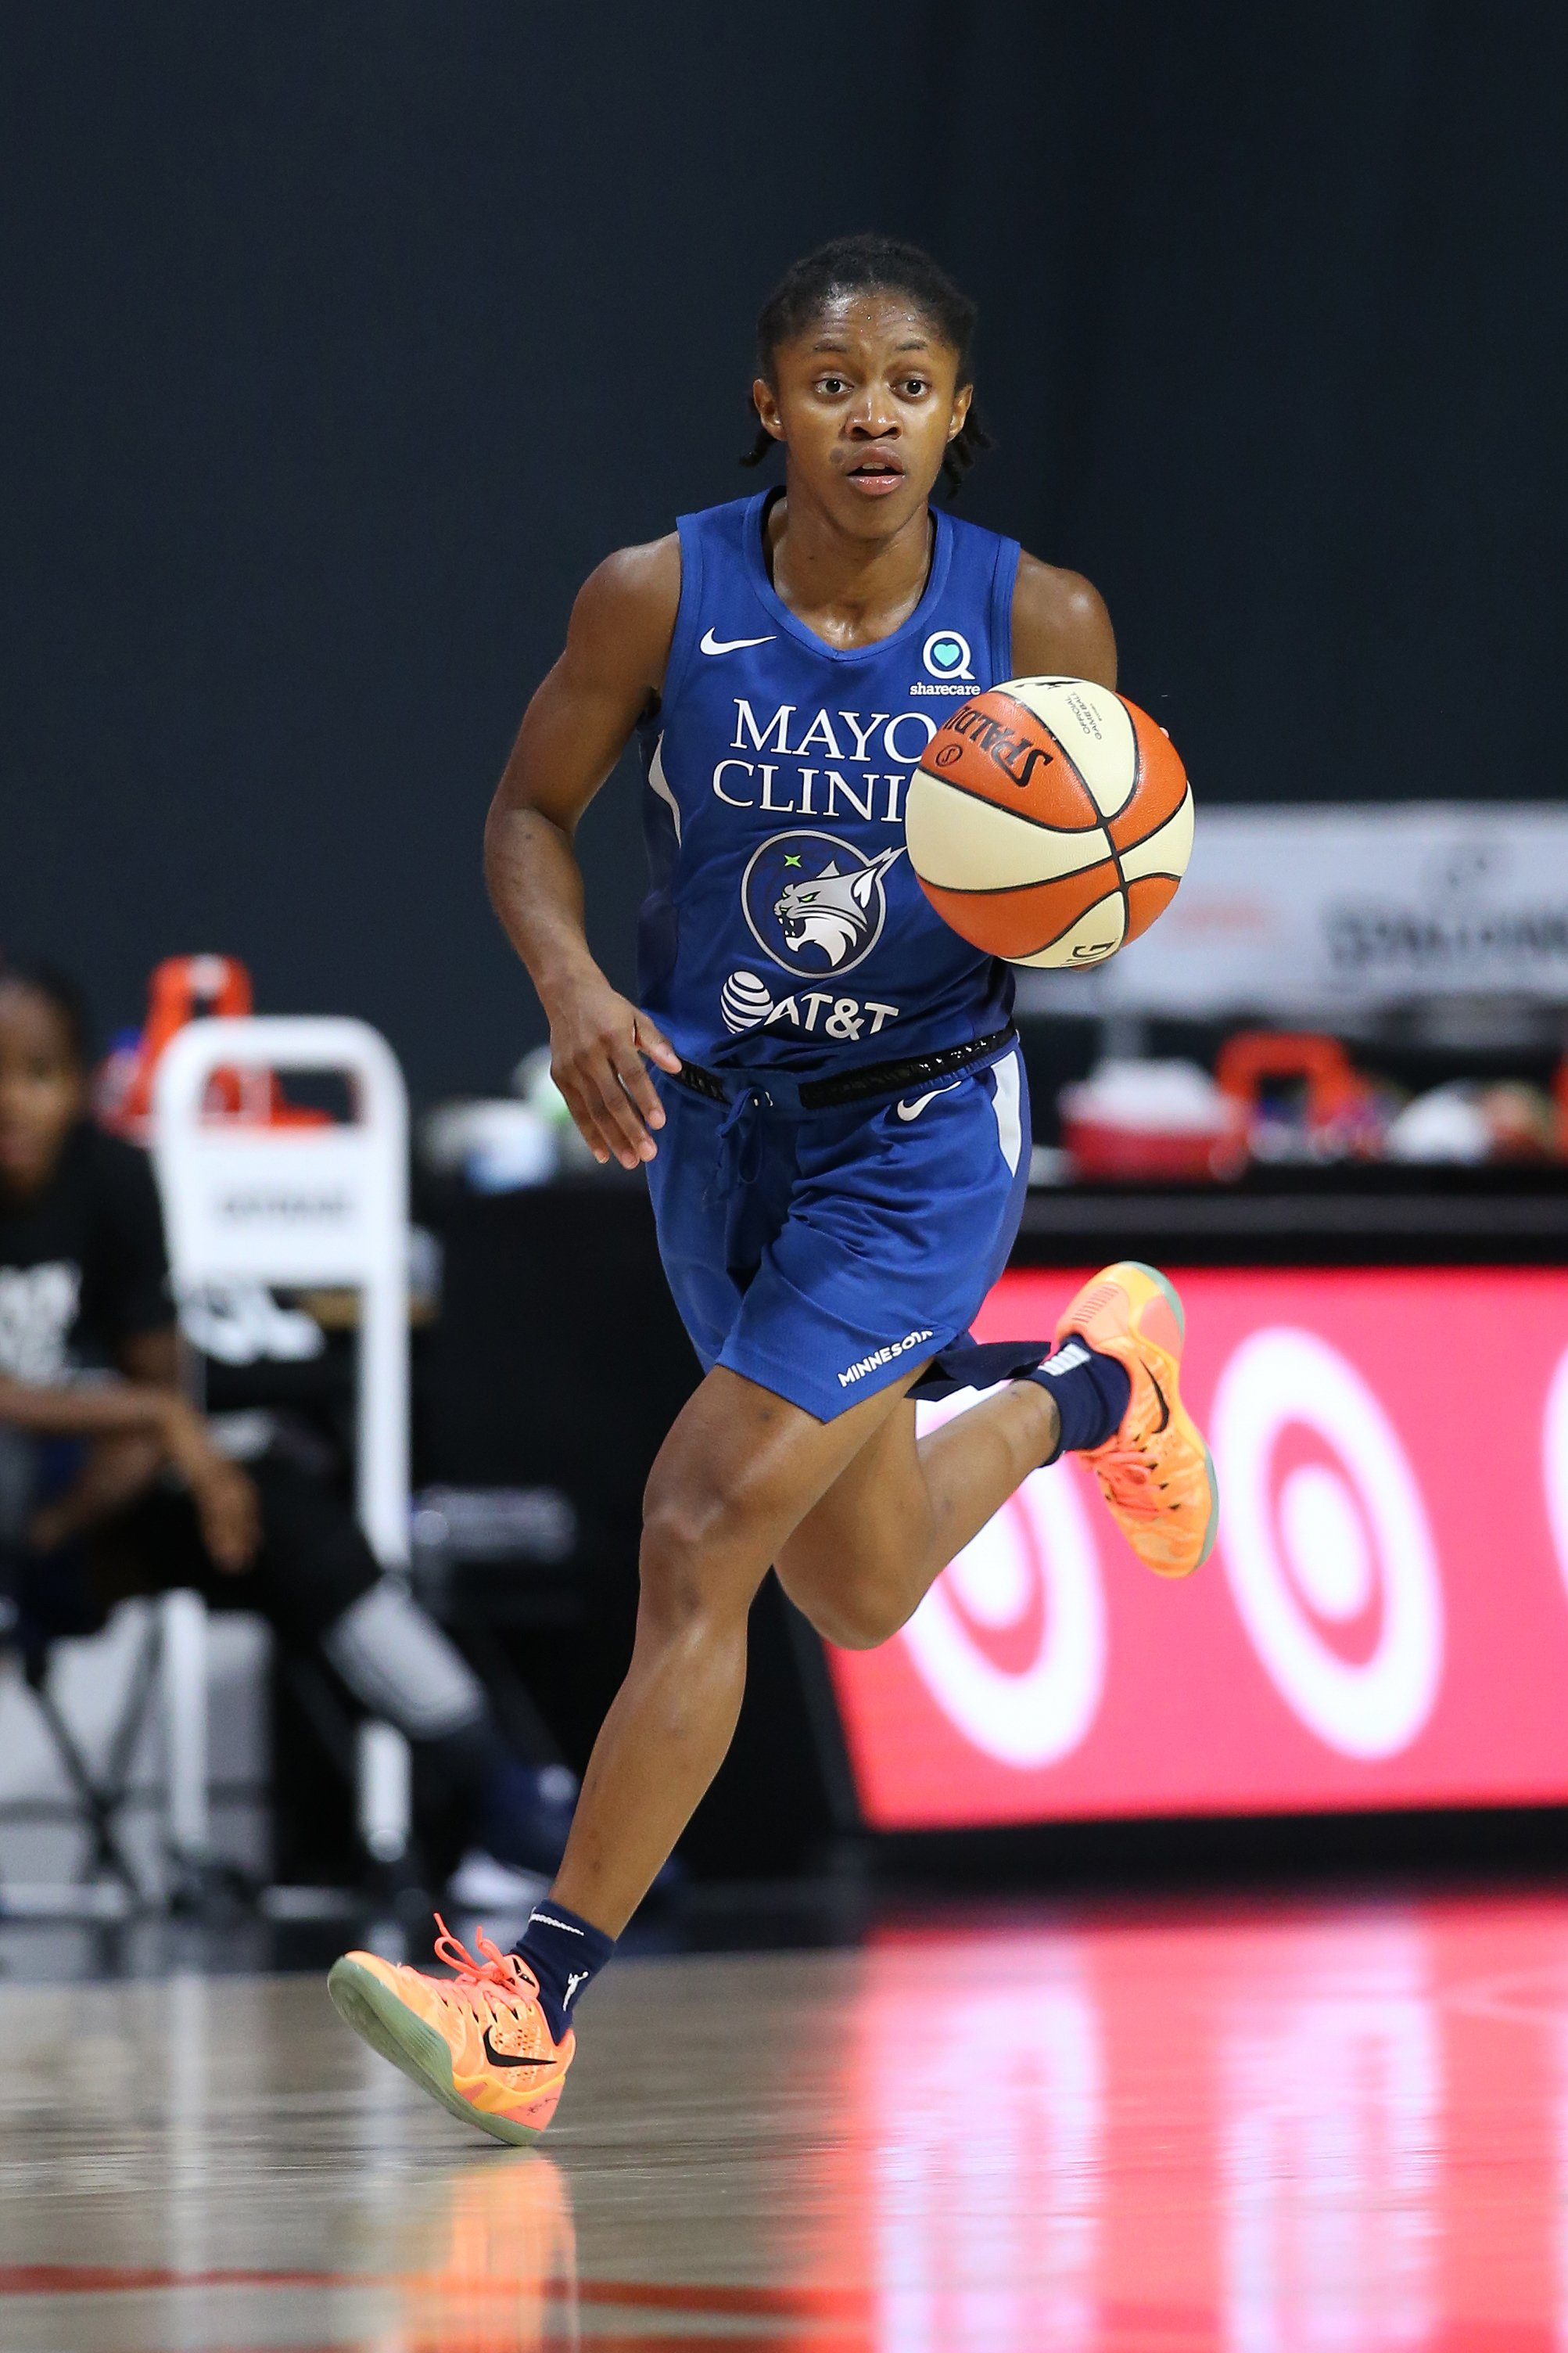 ROY candidate Crystal Dangerfield talks Lynx role, teammates and more |  Women's Hoops World